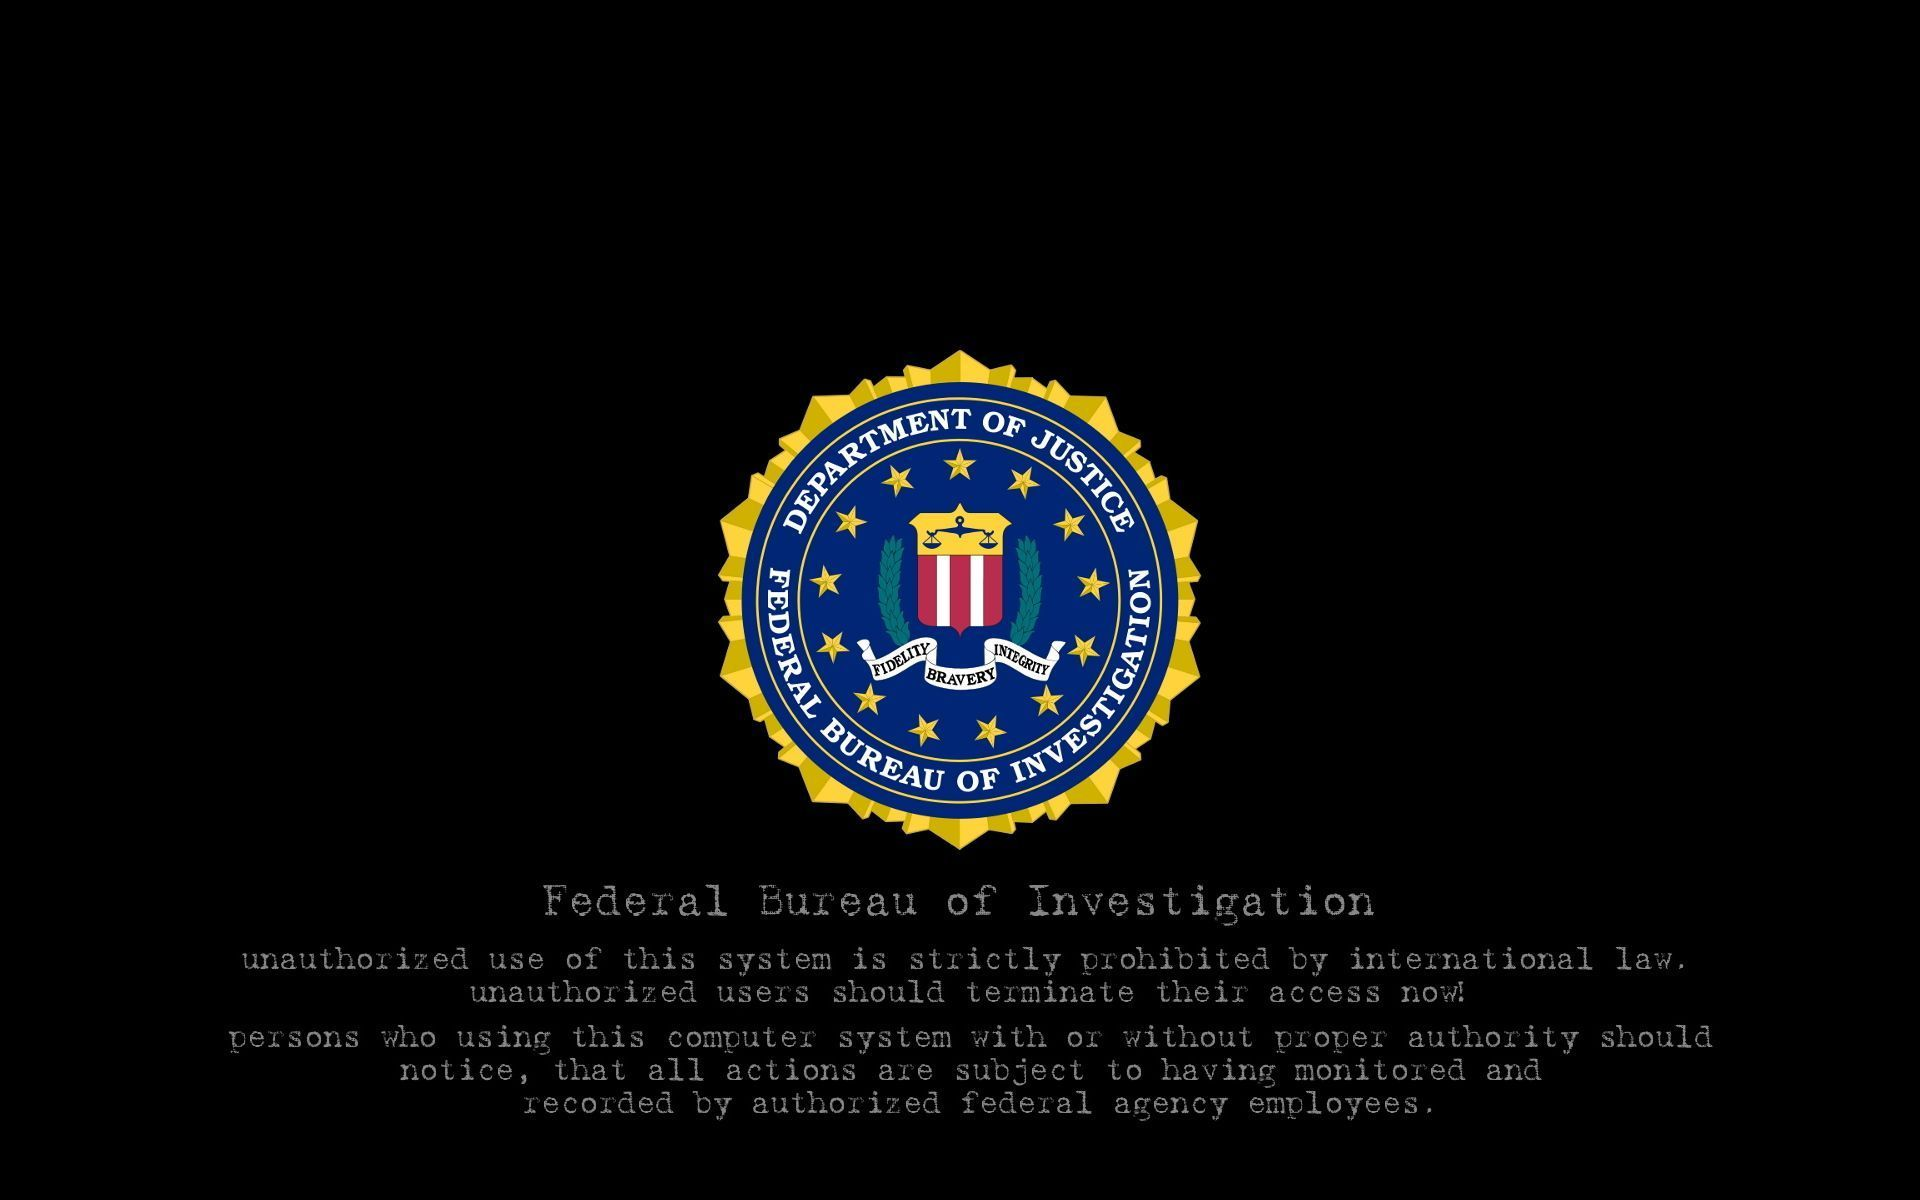 Collection of Cia Wallpaper on HDWallpapers